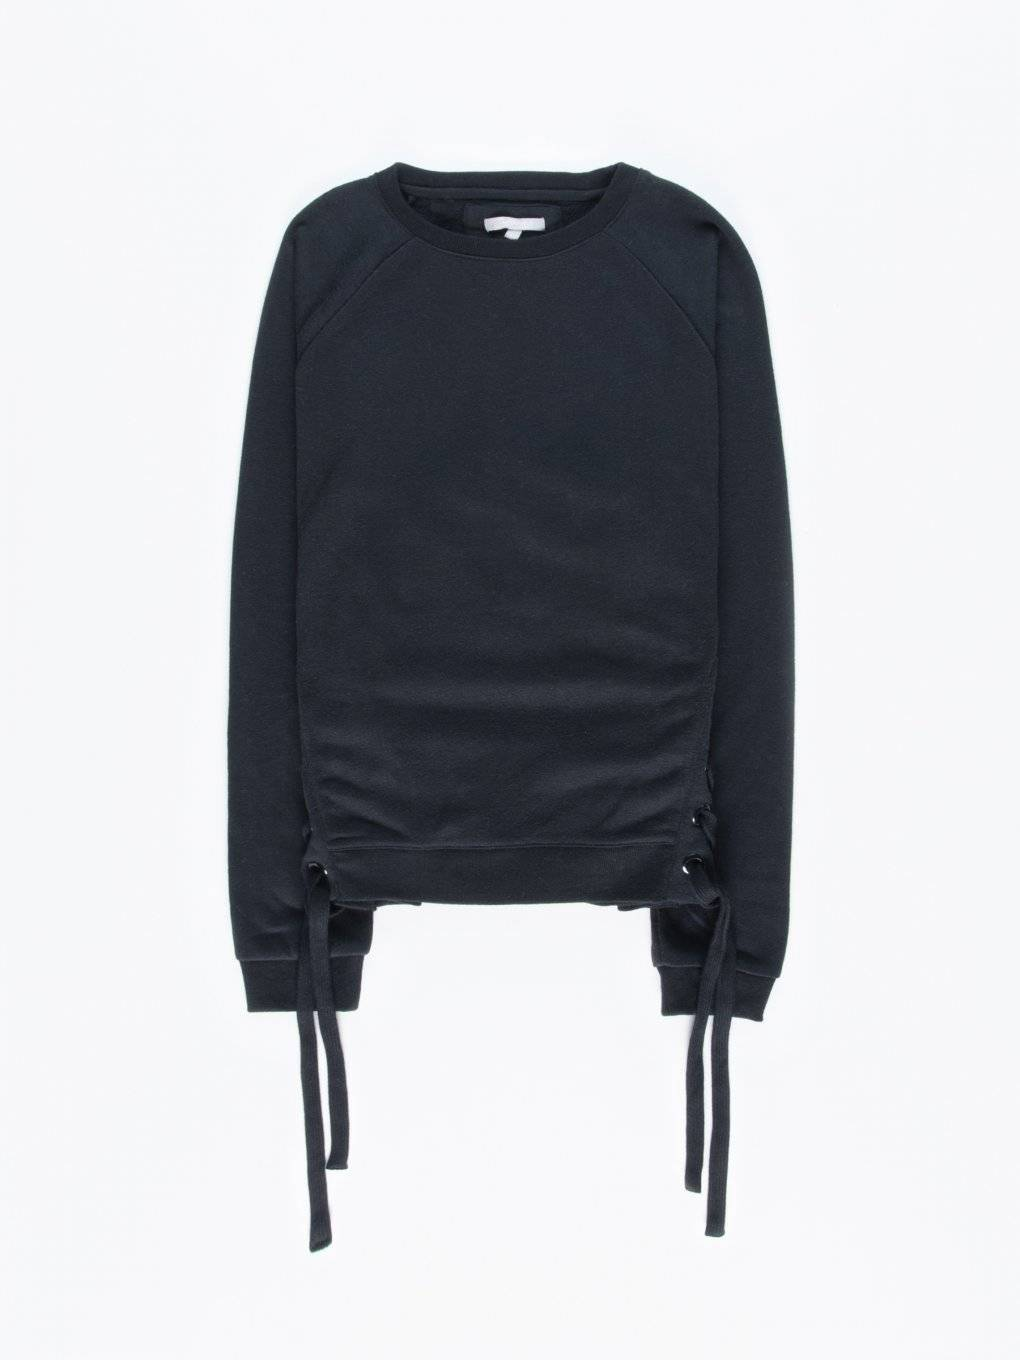 Sweatshirt with side lacing